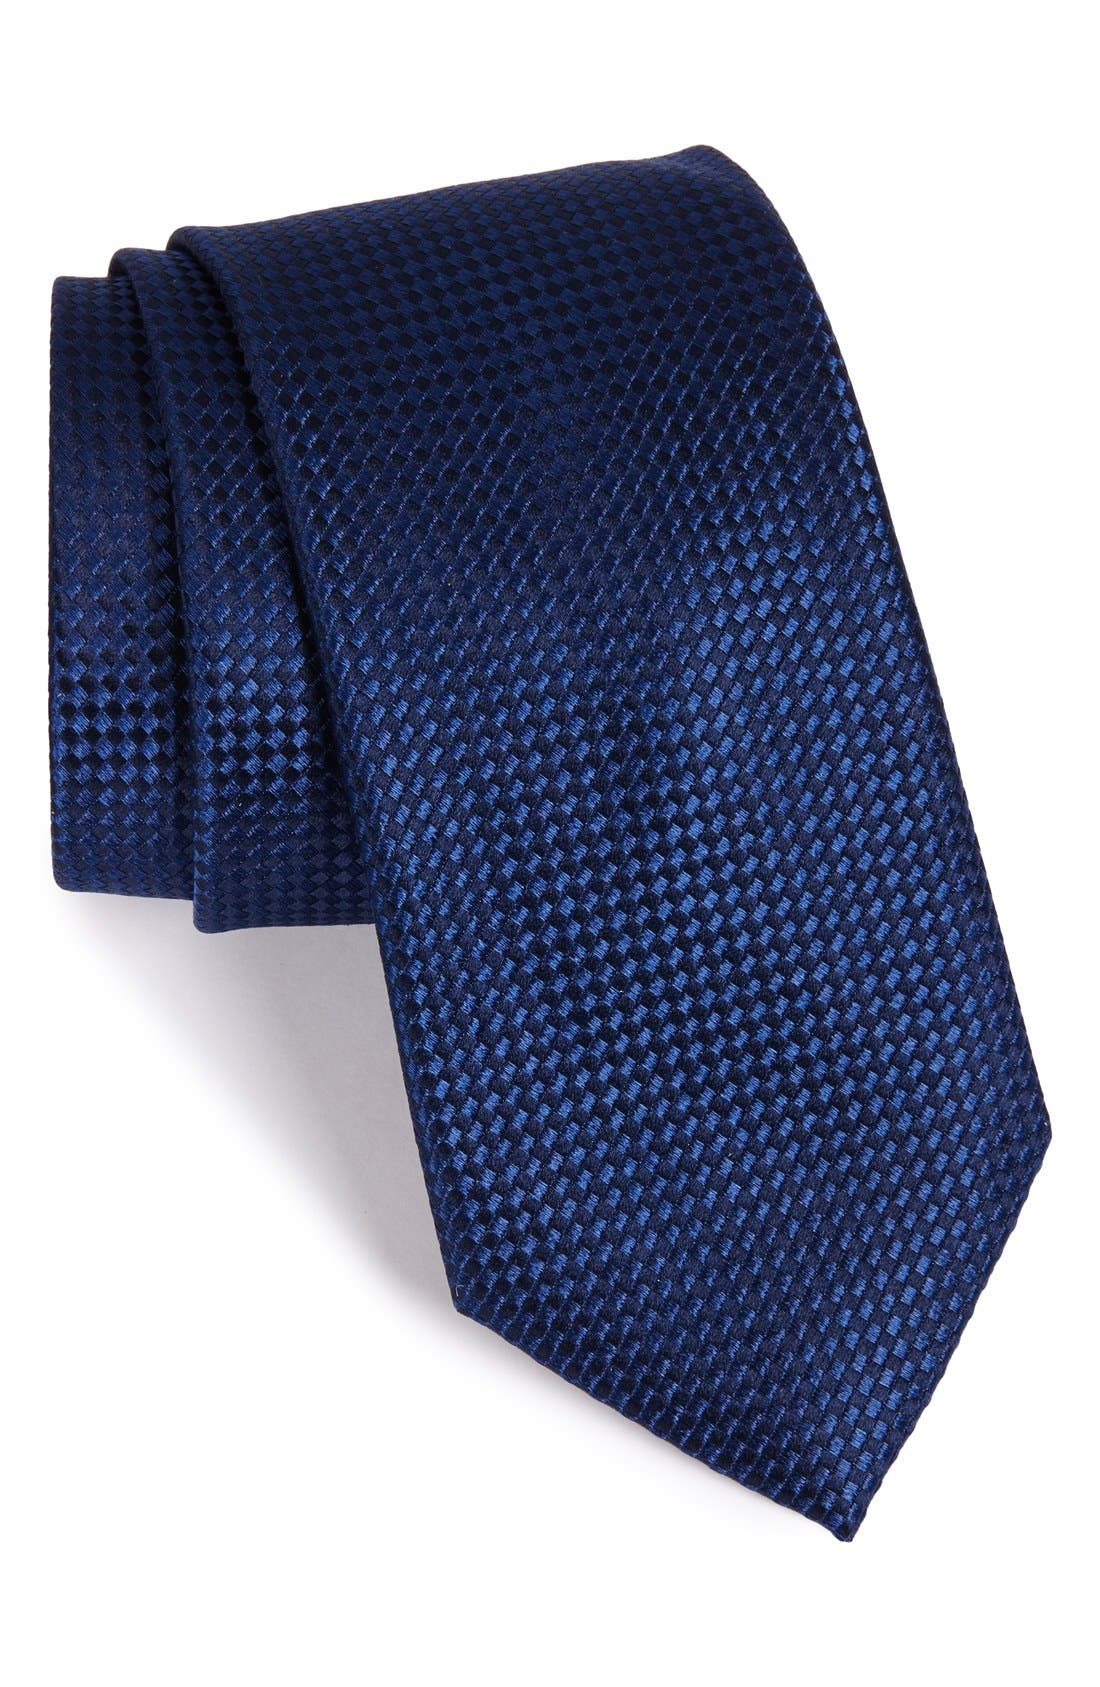 'Nate' Solid Silk Tie,                         Main,                         color, Navy